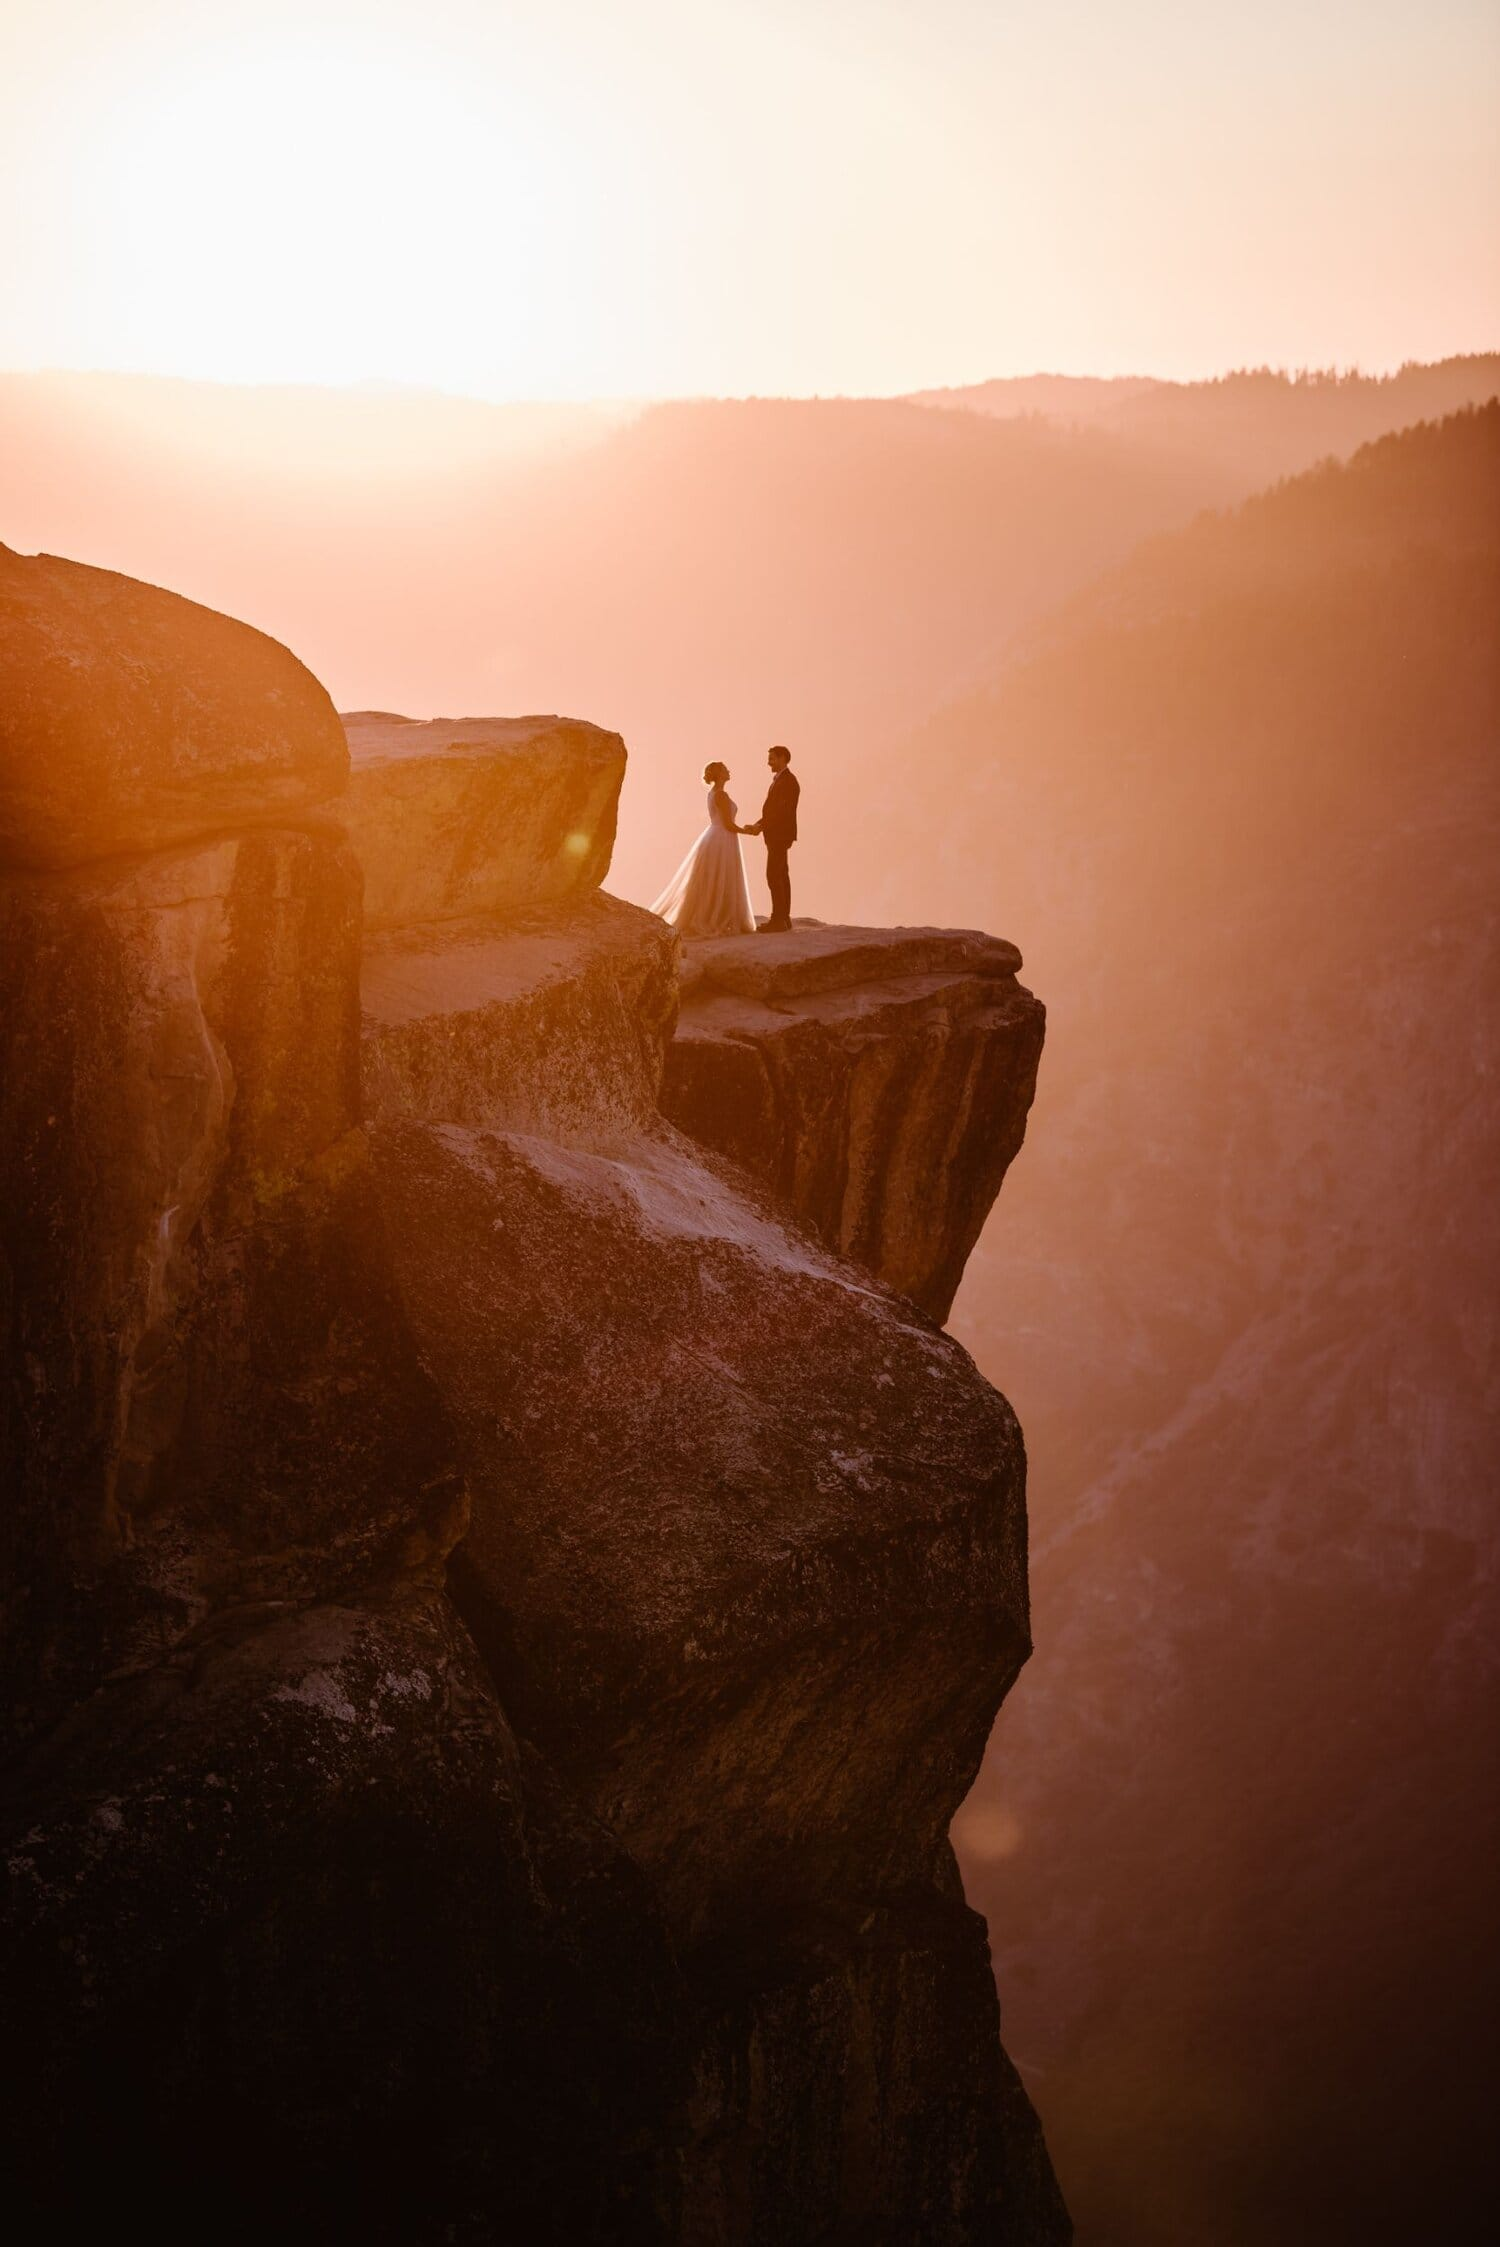 Bride and groom hold hands during sunset at the edge of a cliff.